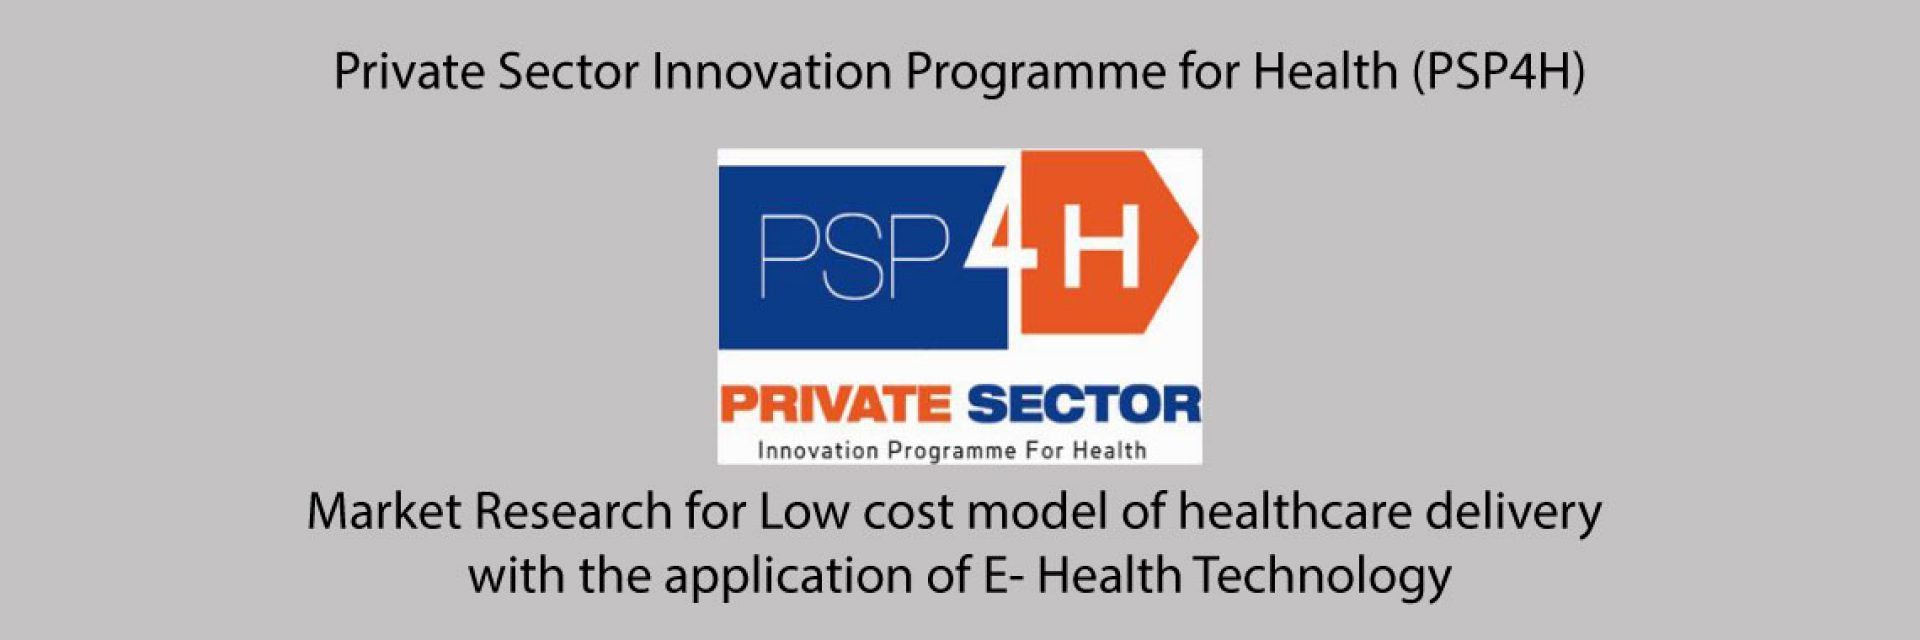 Using Technology to expand equity in access to quality healthcare     Study implemented by Africa Center for Health Systems Research & Management;      Study funded by DFID and commissioned by Cardno UK through PSP4H